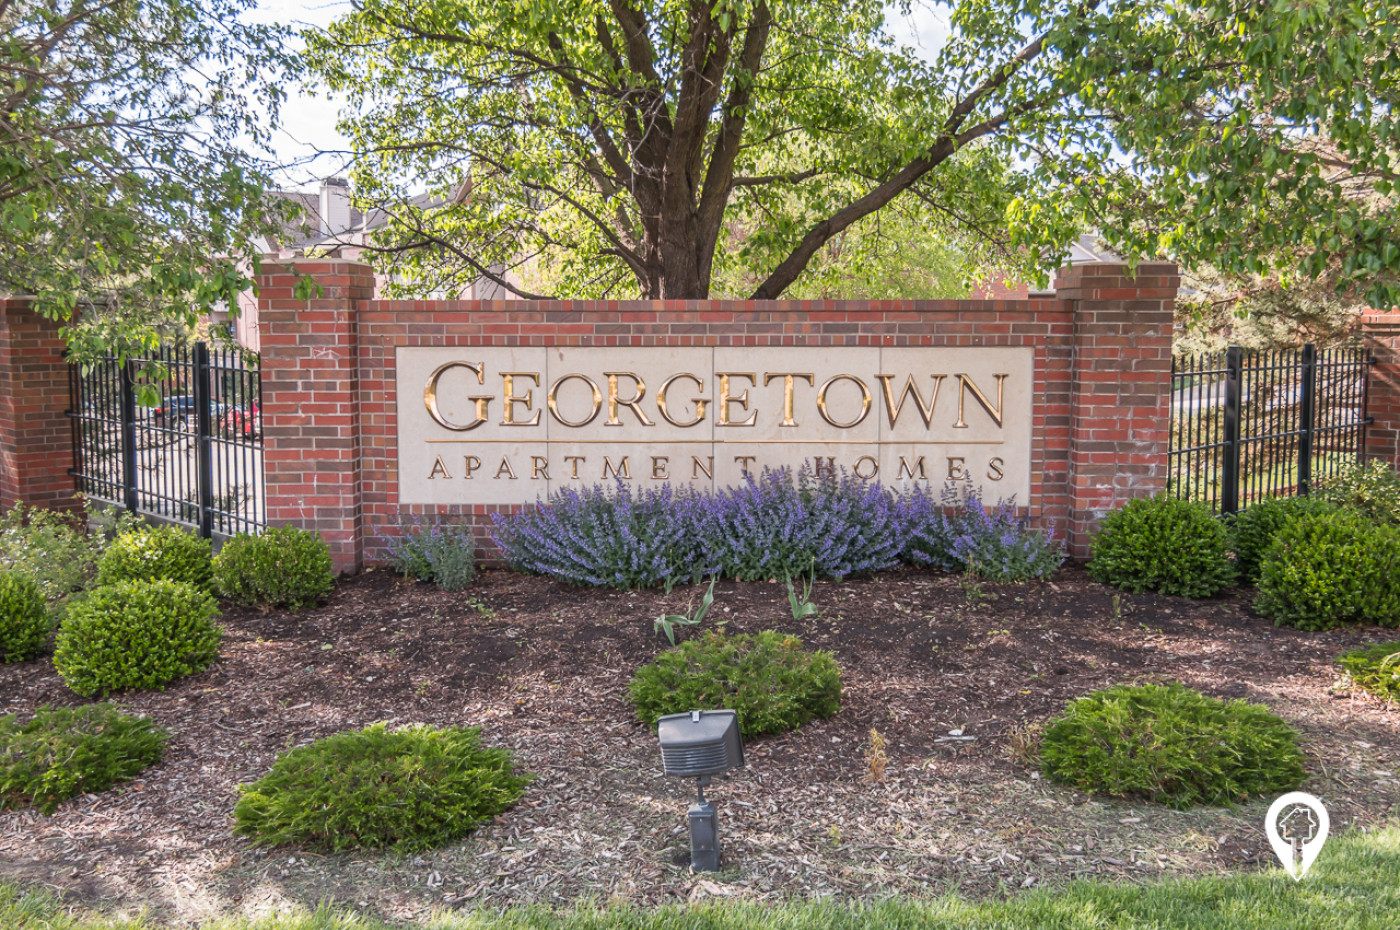 Curtin Property Company - Georgetown Apartments